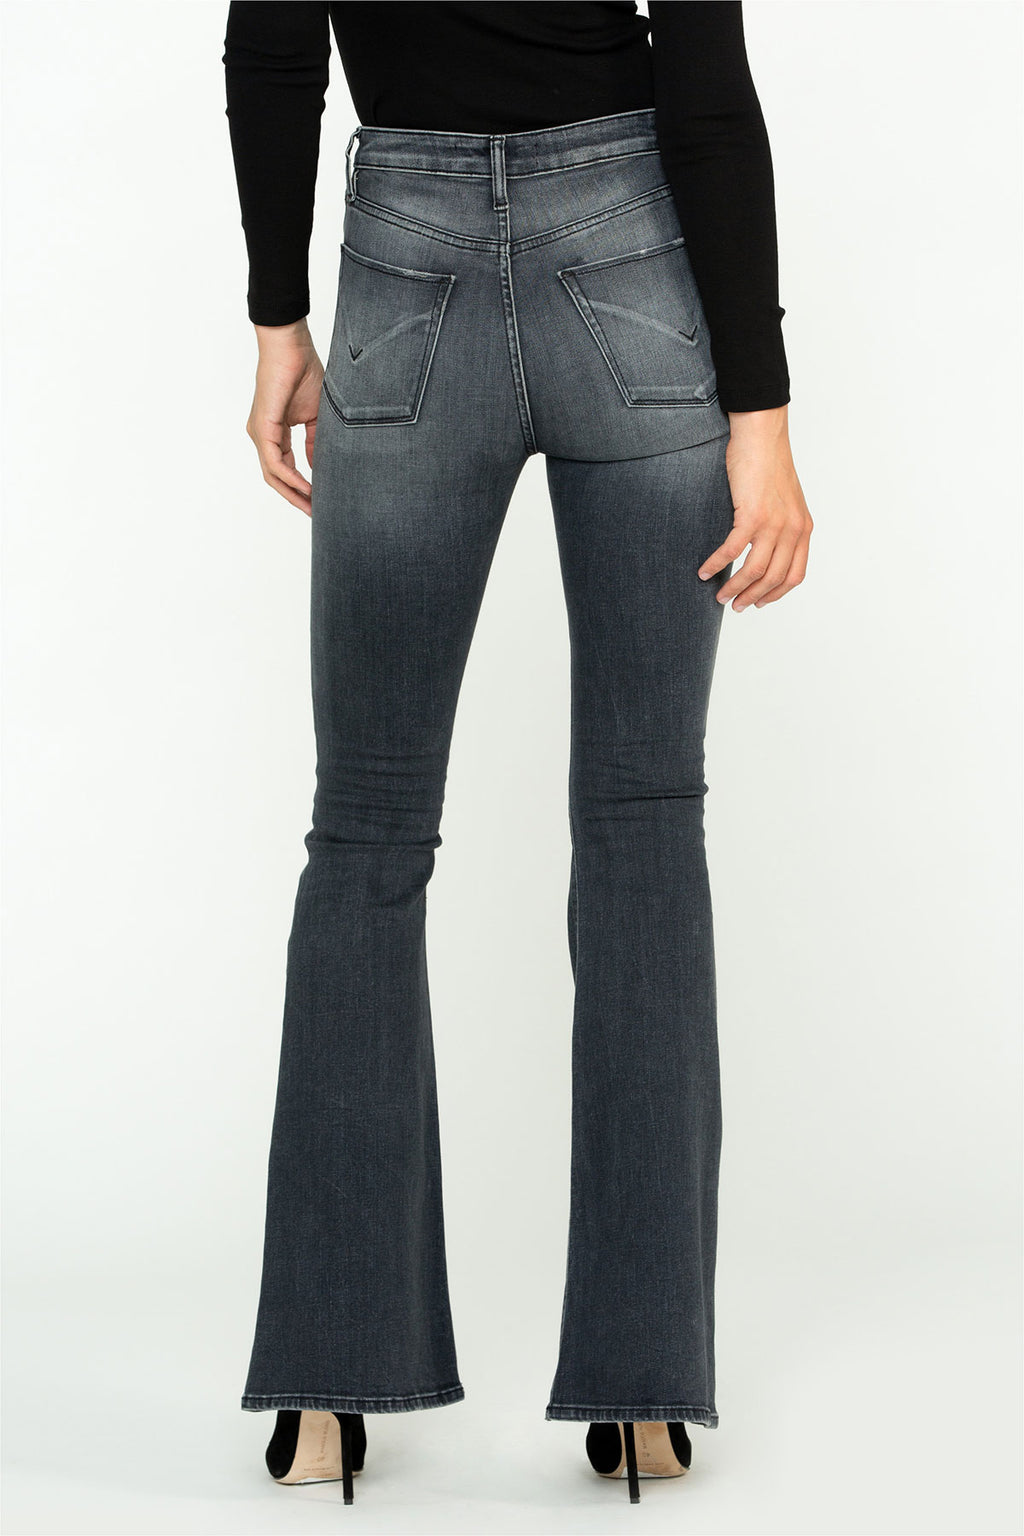 Holly High-Rise Flare Jean - hudsonjeans